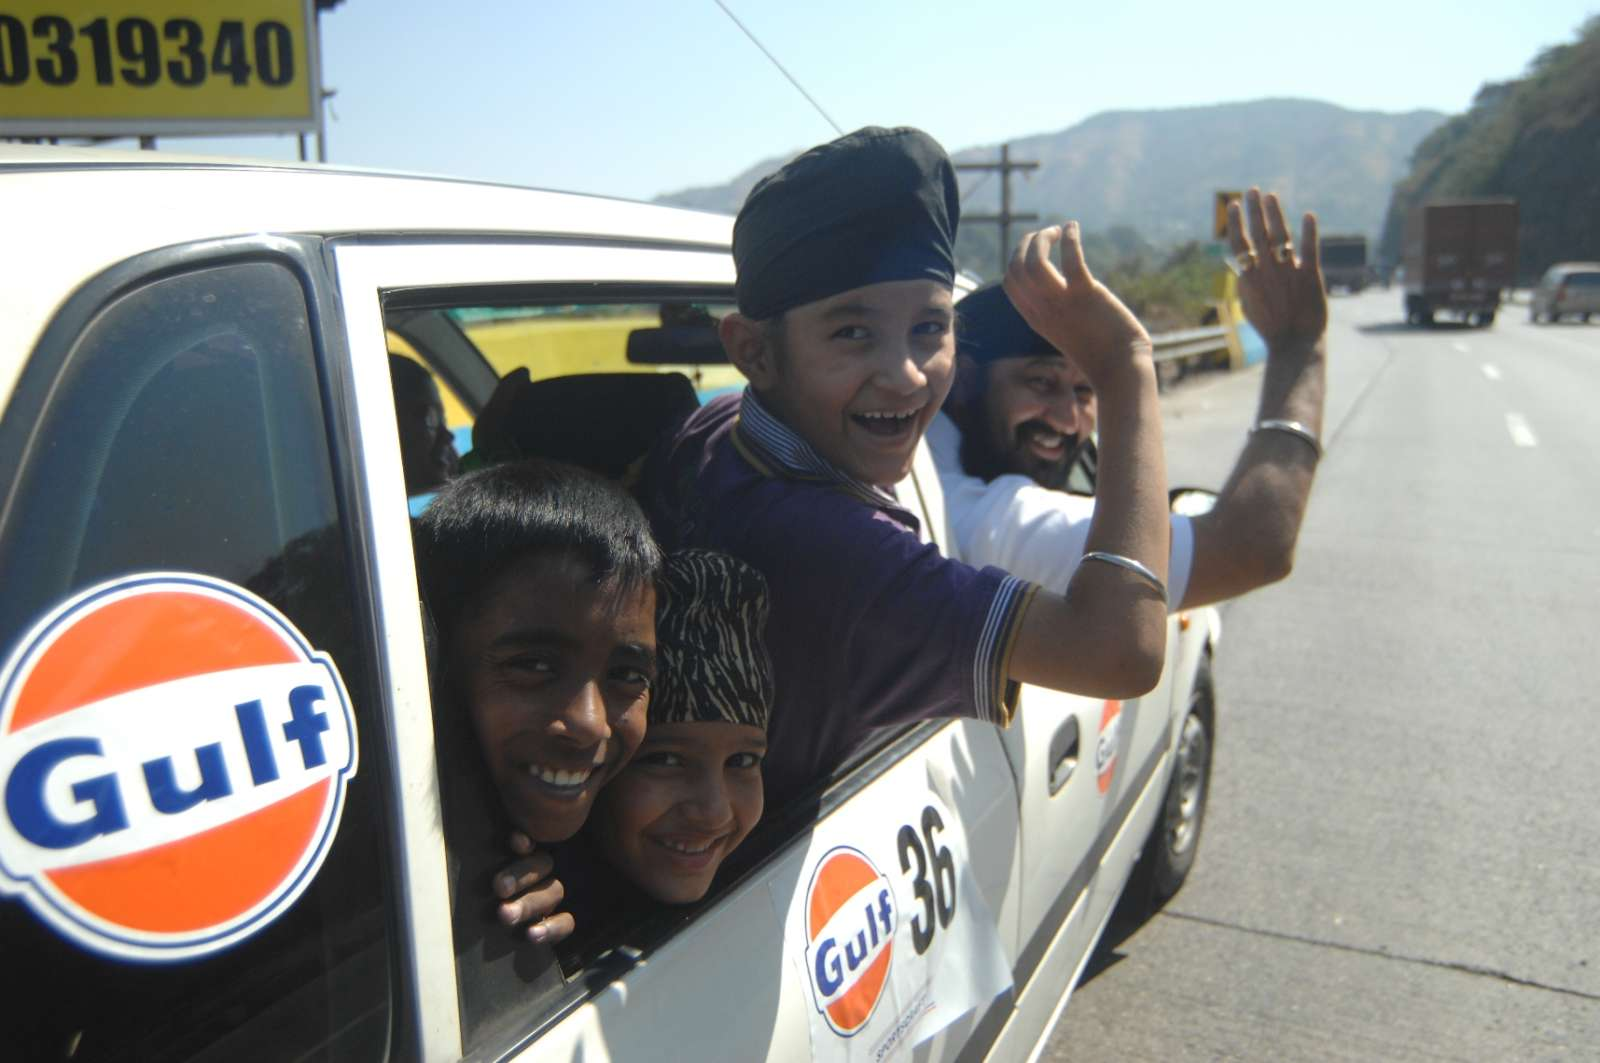 Gulf Foster a Child Car Drive 2013 energizes lives of the underprivileged